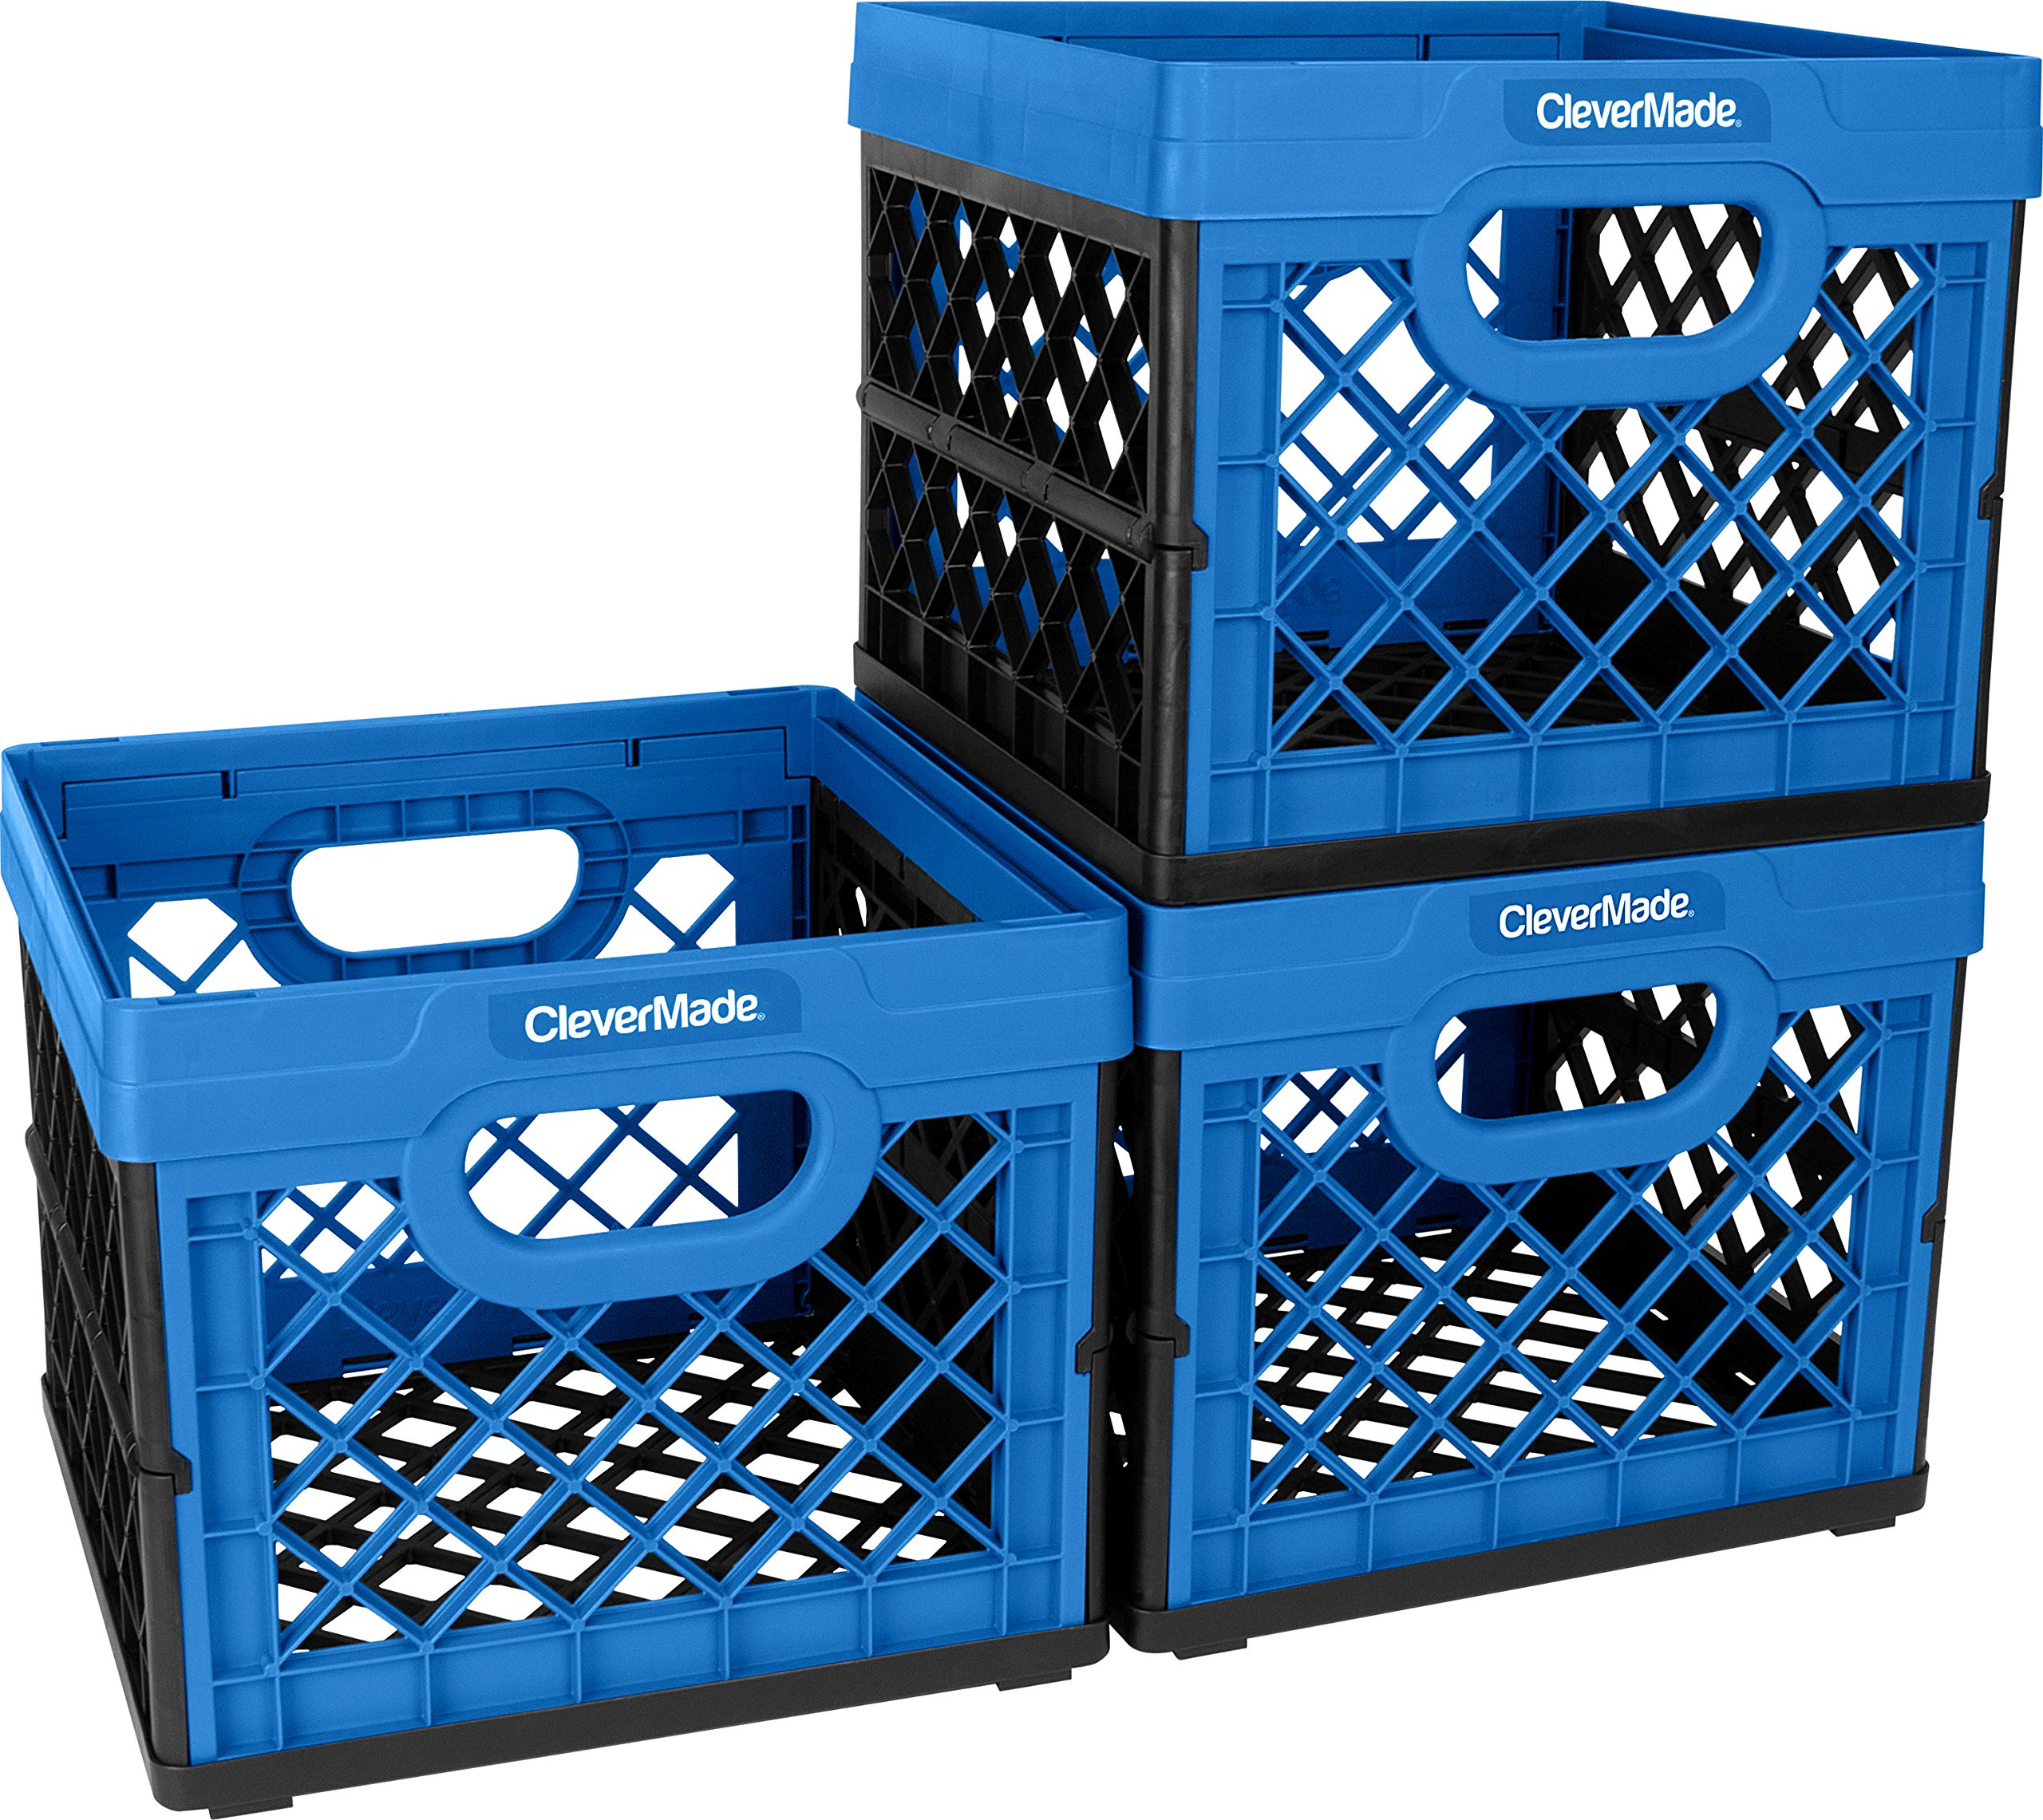 CleverMade Collapsible Milk Crates, 25L Plastic Stackable Storage Bins CleverCrates Utility Folding Baskets, Pack of 3, Blue by CleverMade